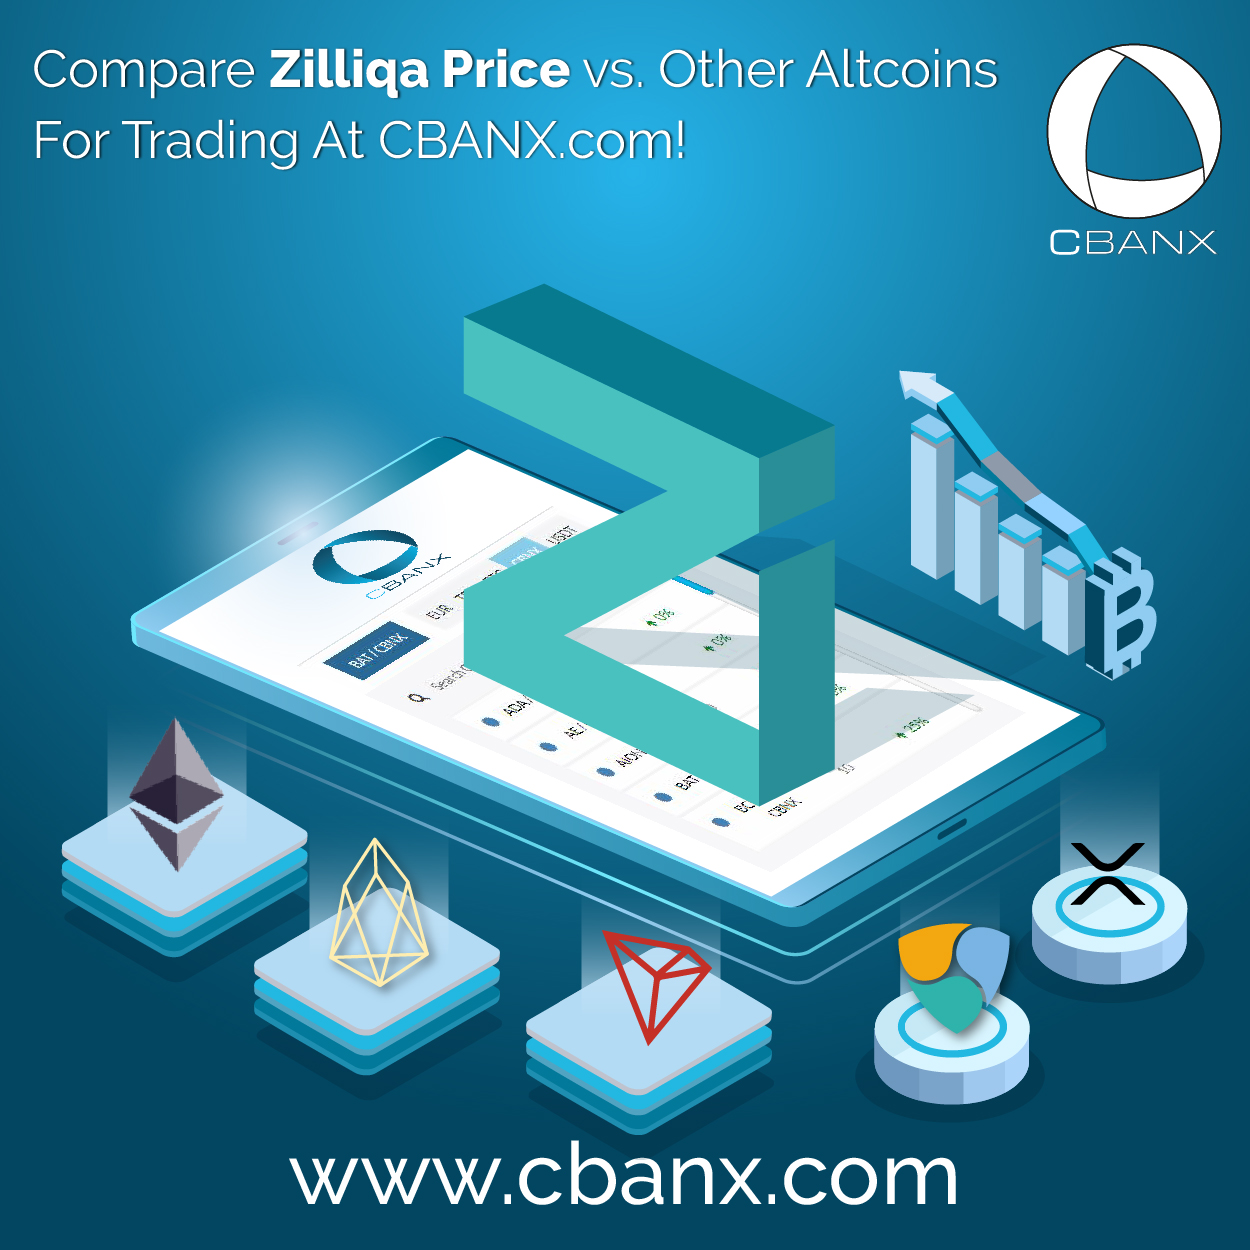 Compare Zilliqa Price vs. Other Altcoins For Trading At CBANX.com!